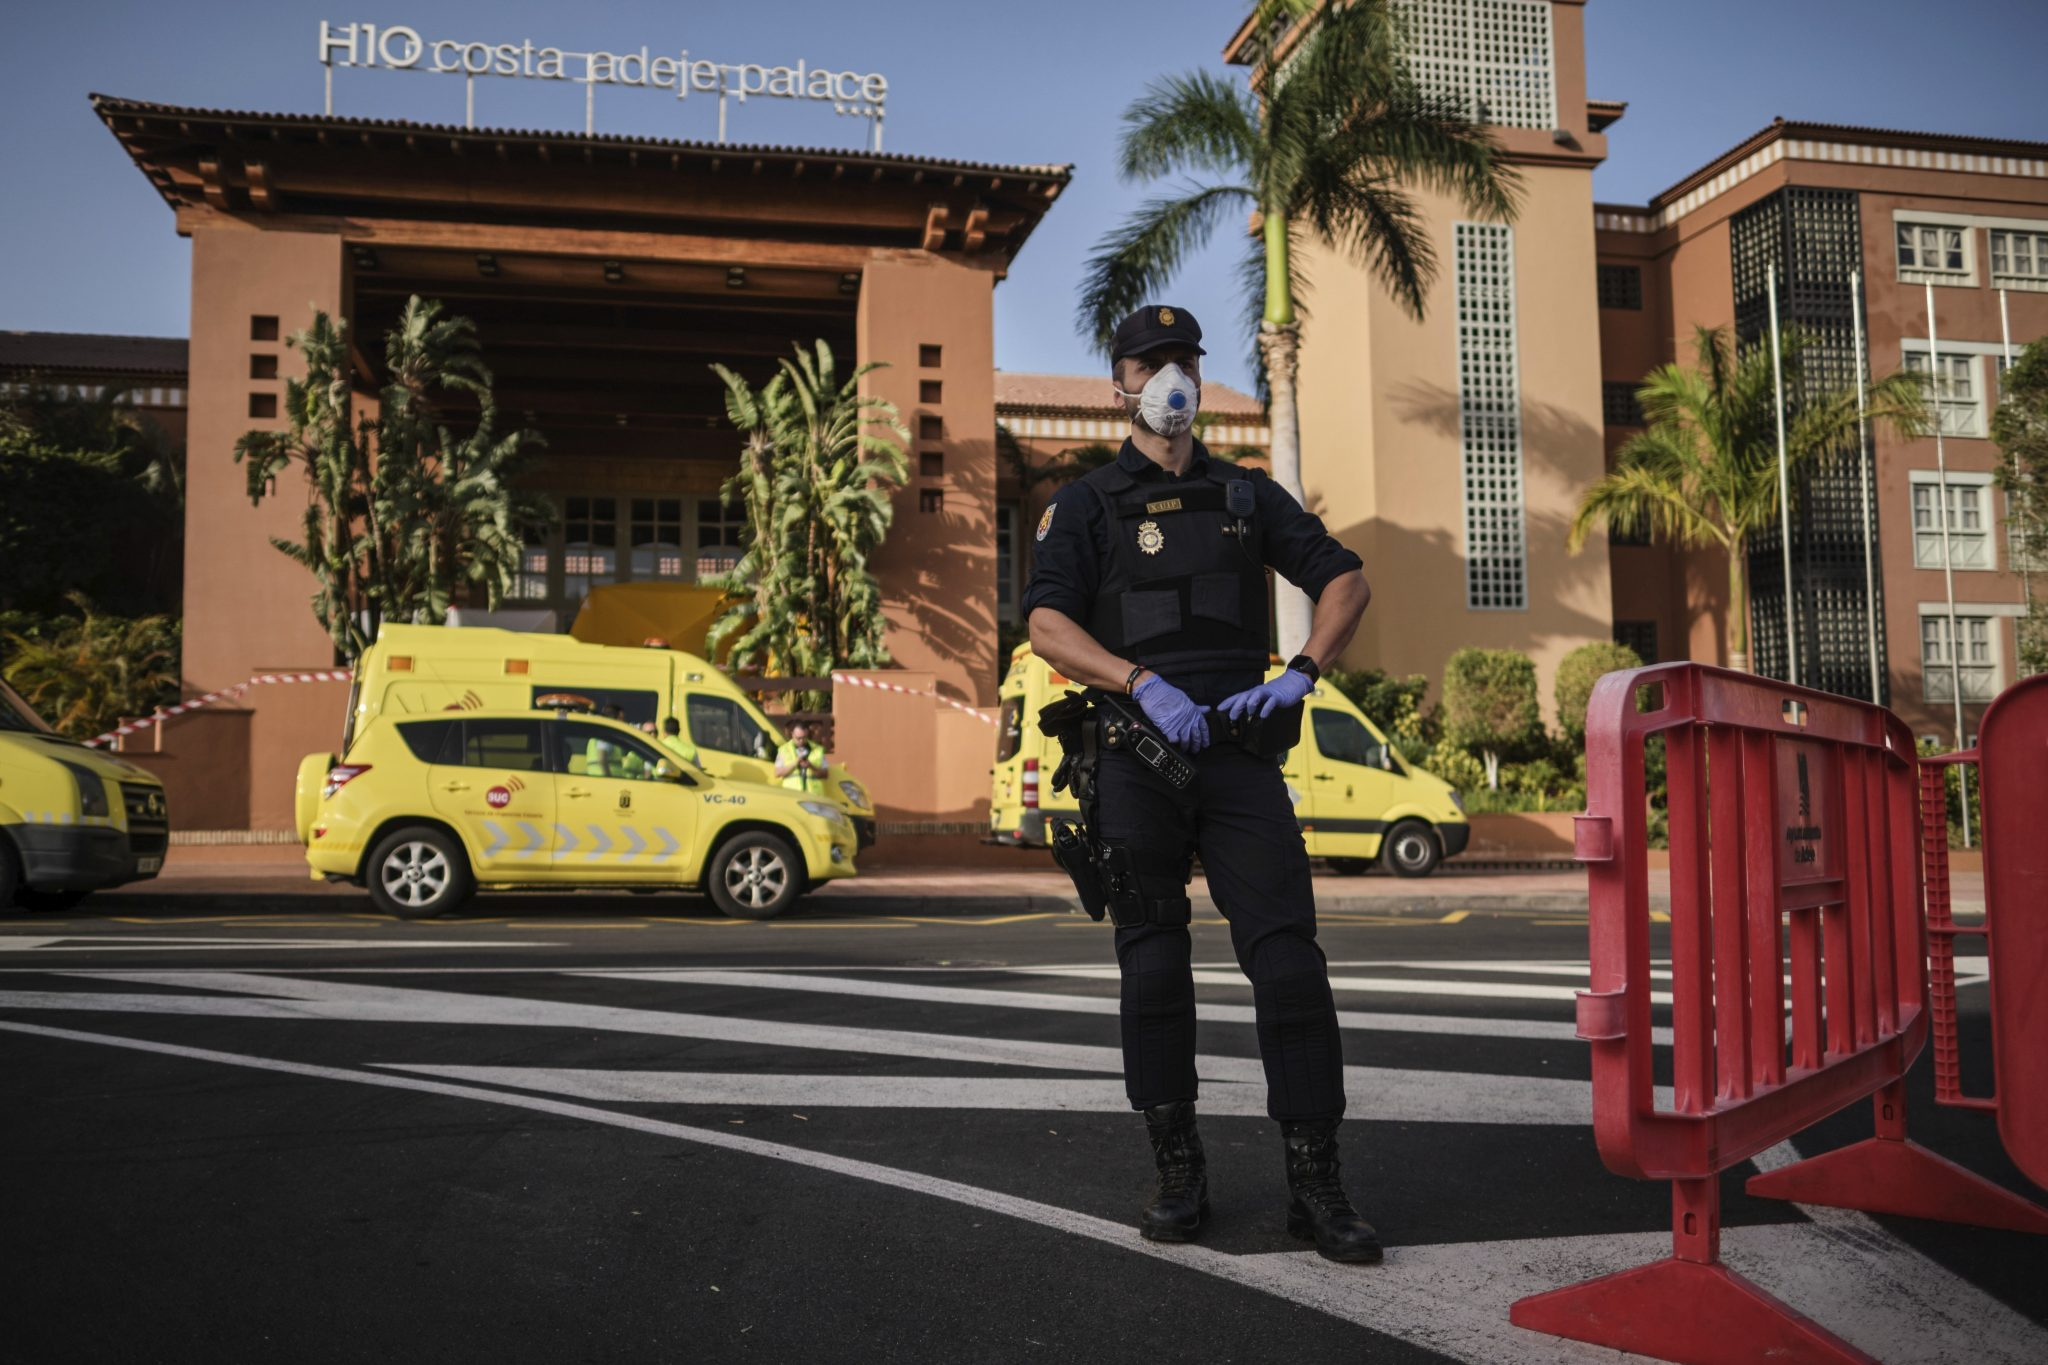 Hungarians Quarantined in Tenerife Virus-hit Hotel May Come Home Soon post's picture